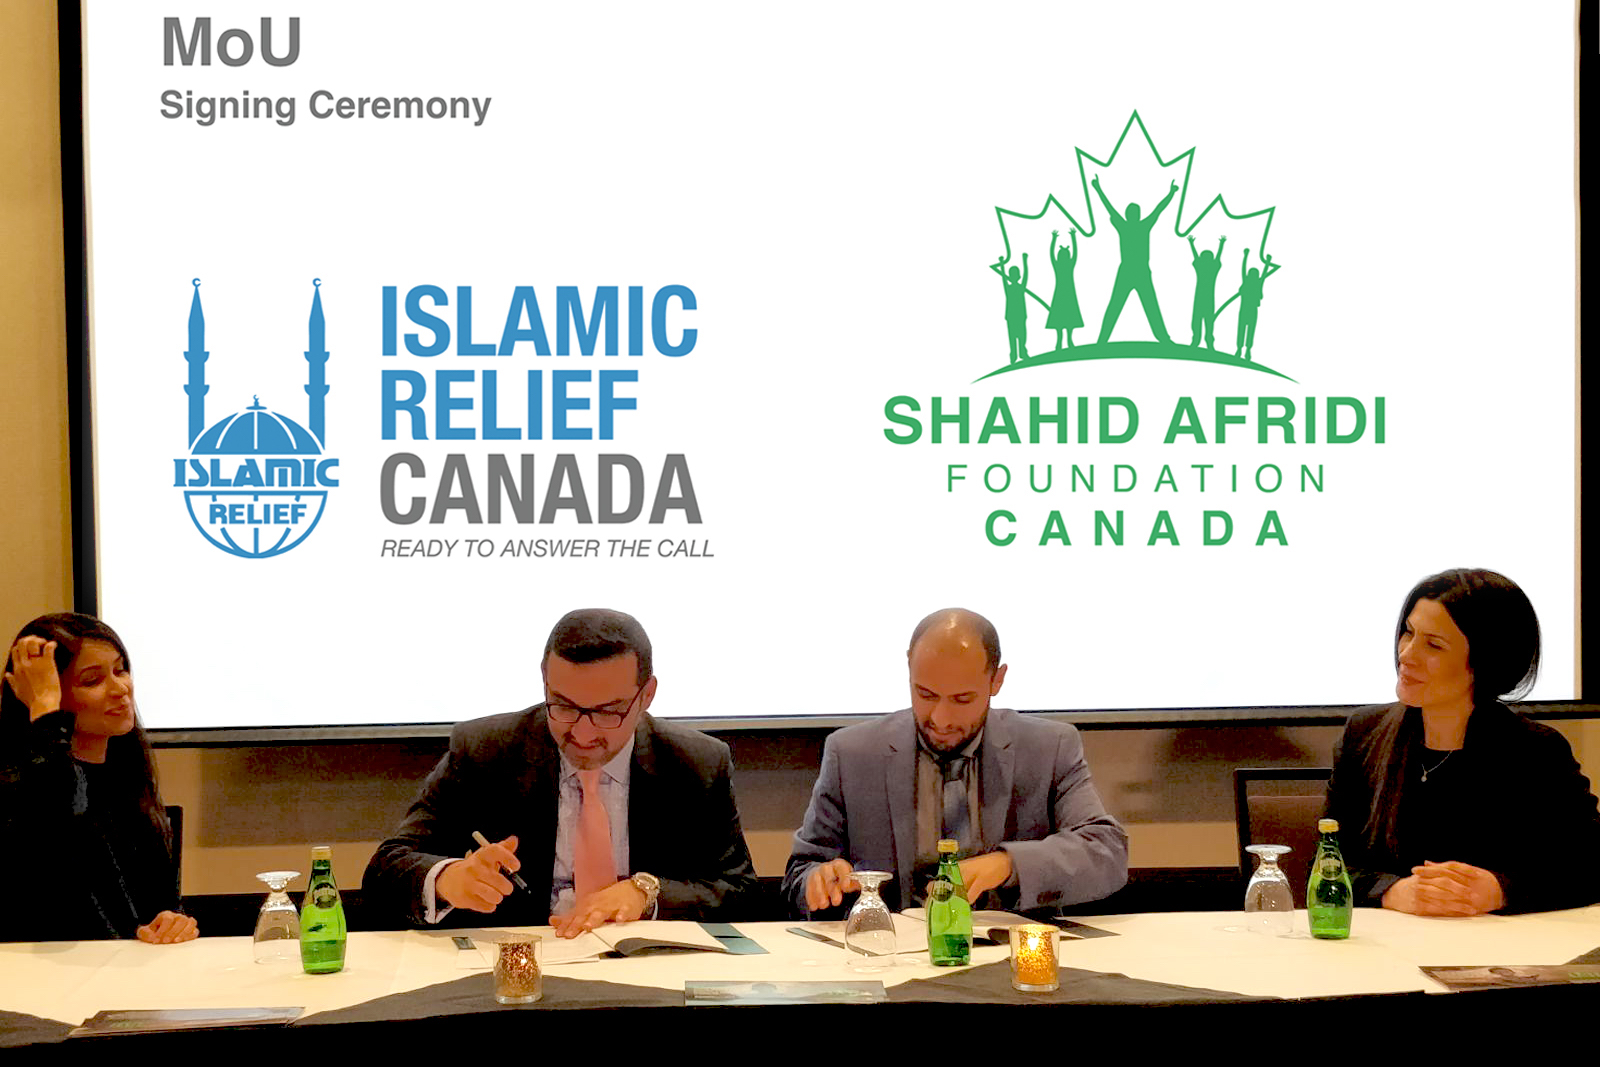 From Left to Right: Fariha Khan,  Member of Board of Directors, Islamic Relief Canada; Faisal Yousuf,  President, Shahid Afridi Foundation Canada;  Zaid Al-Rawni,  CEO, Islamic Relief Canada;  Filiz Ozmisir,  Executive Vice President, Shahid Afridi Foundation Canada